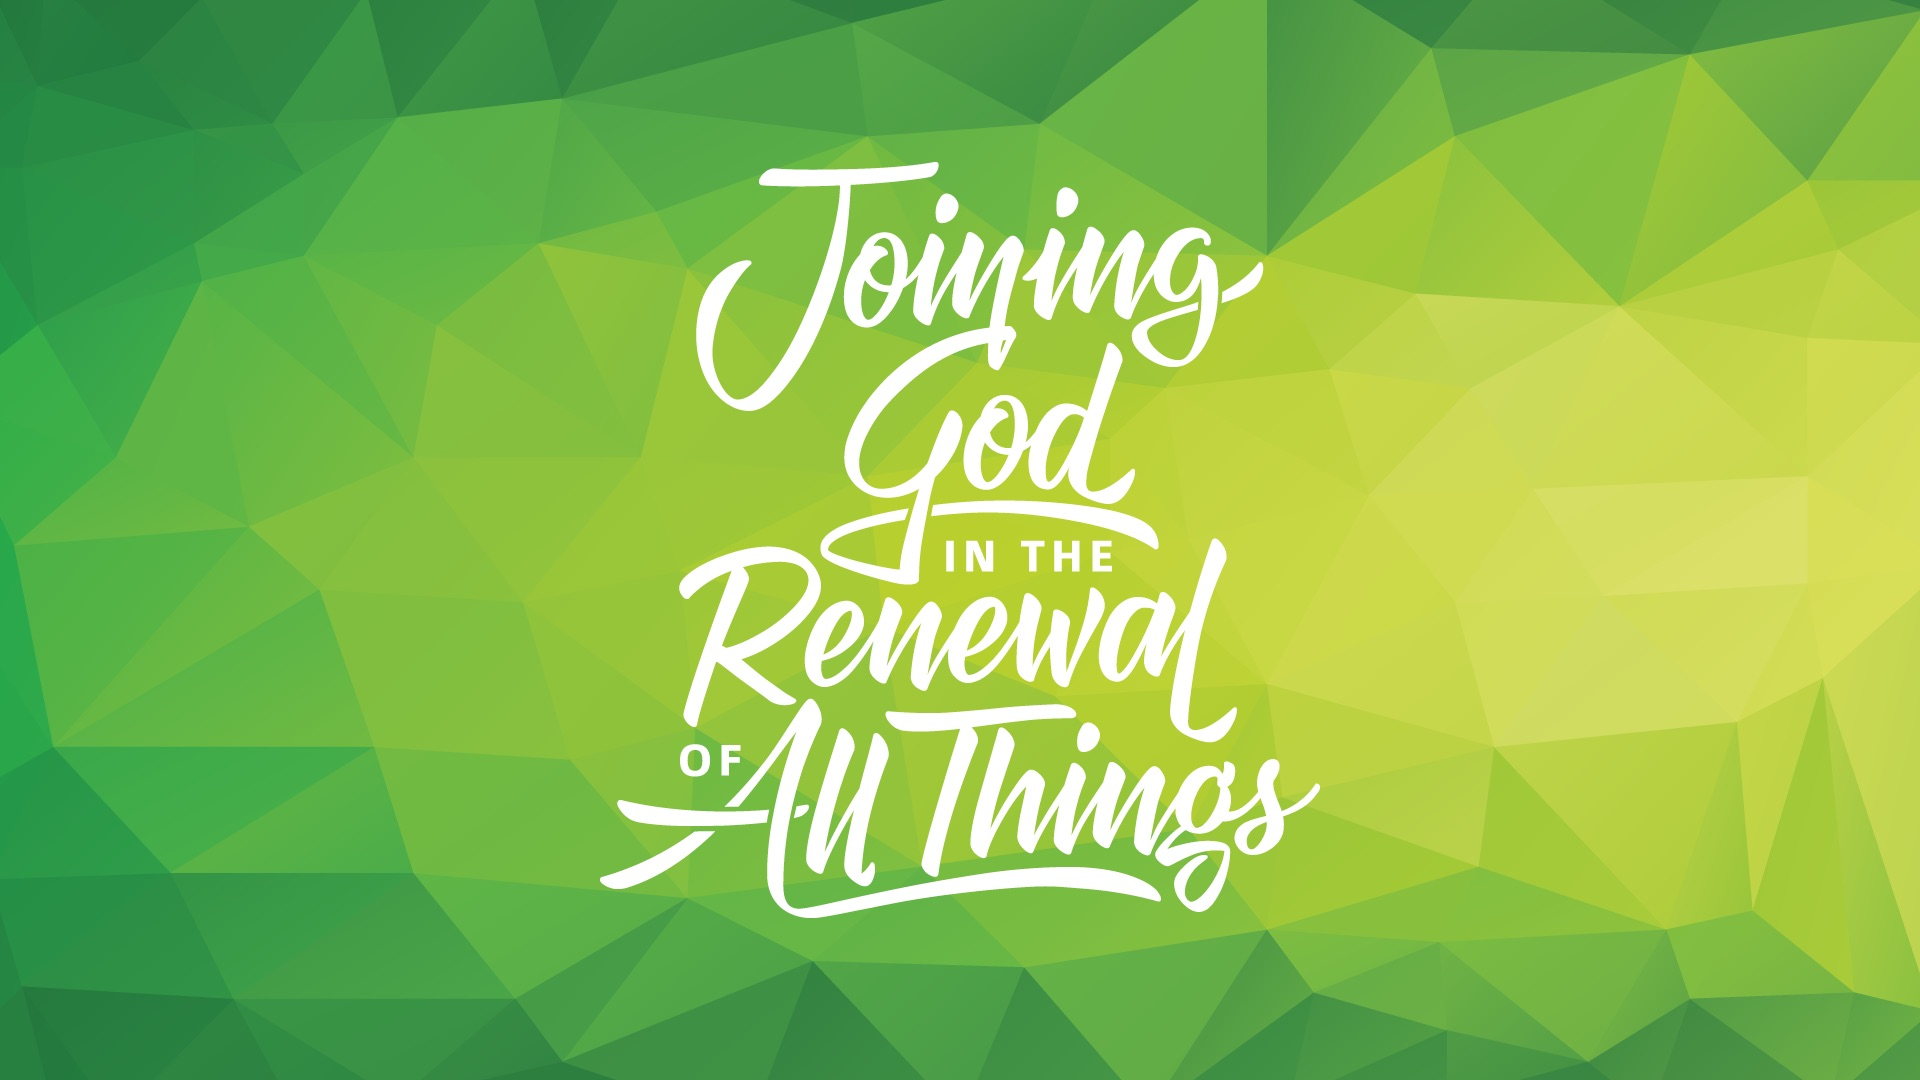 Joining God in the Renewal of All Things